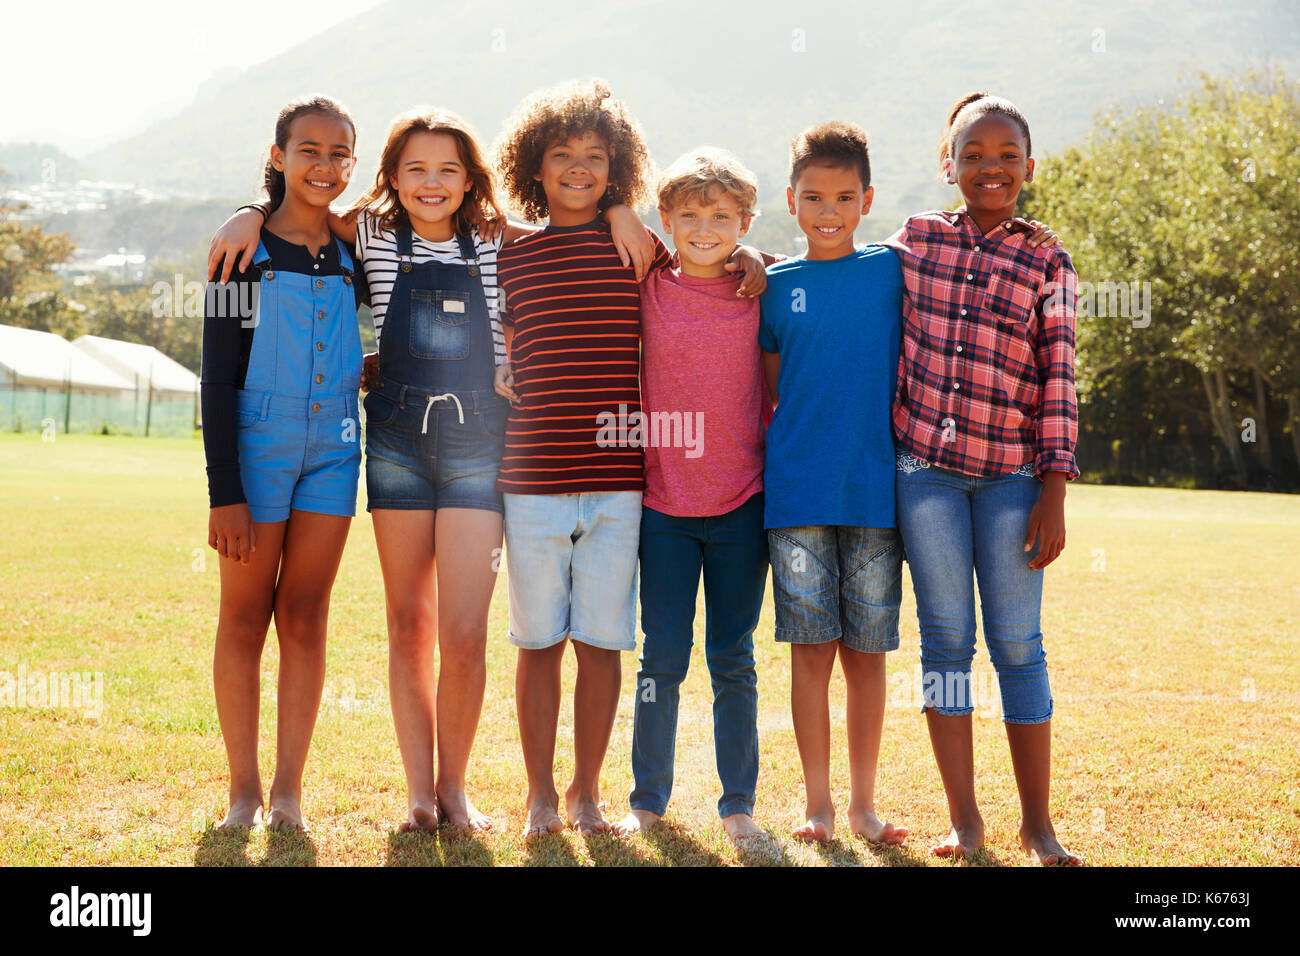 Full length portrait of six pre-teen friends in a park - Stock Image